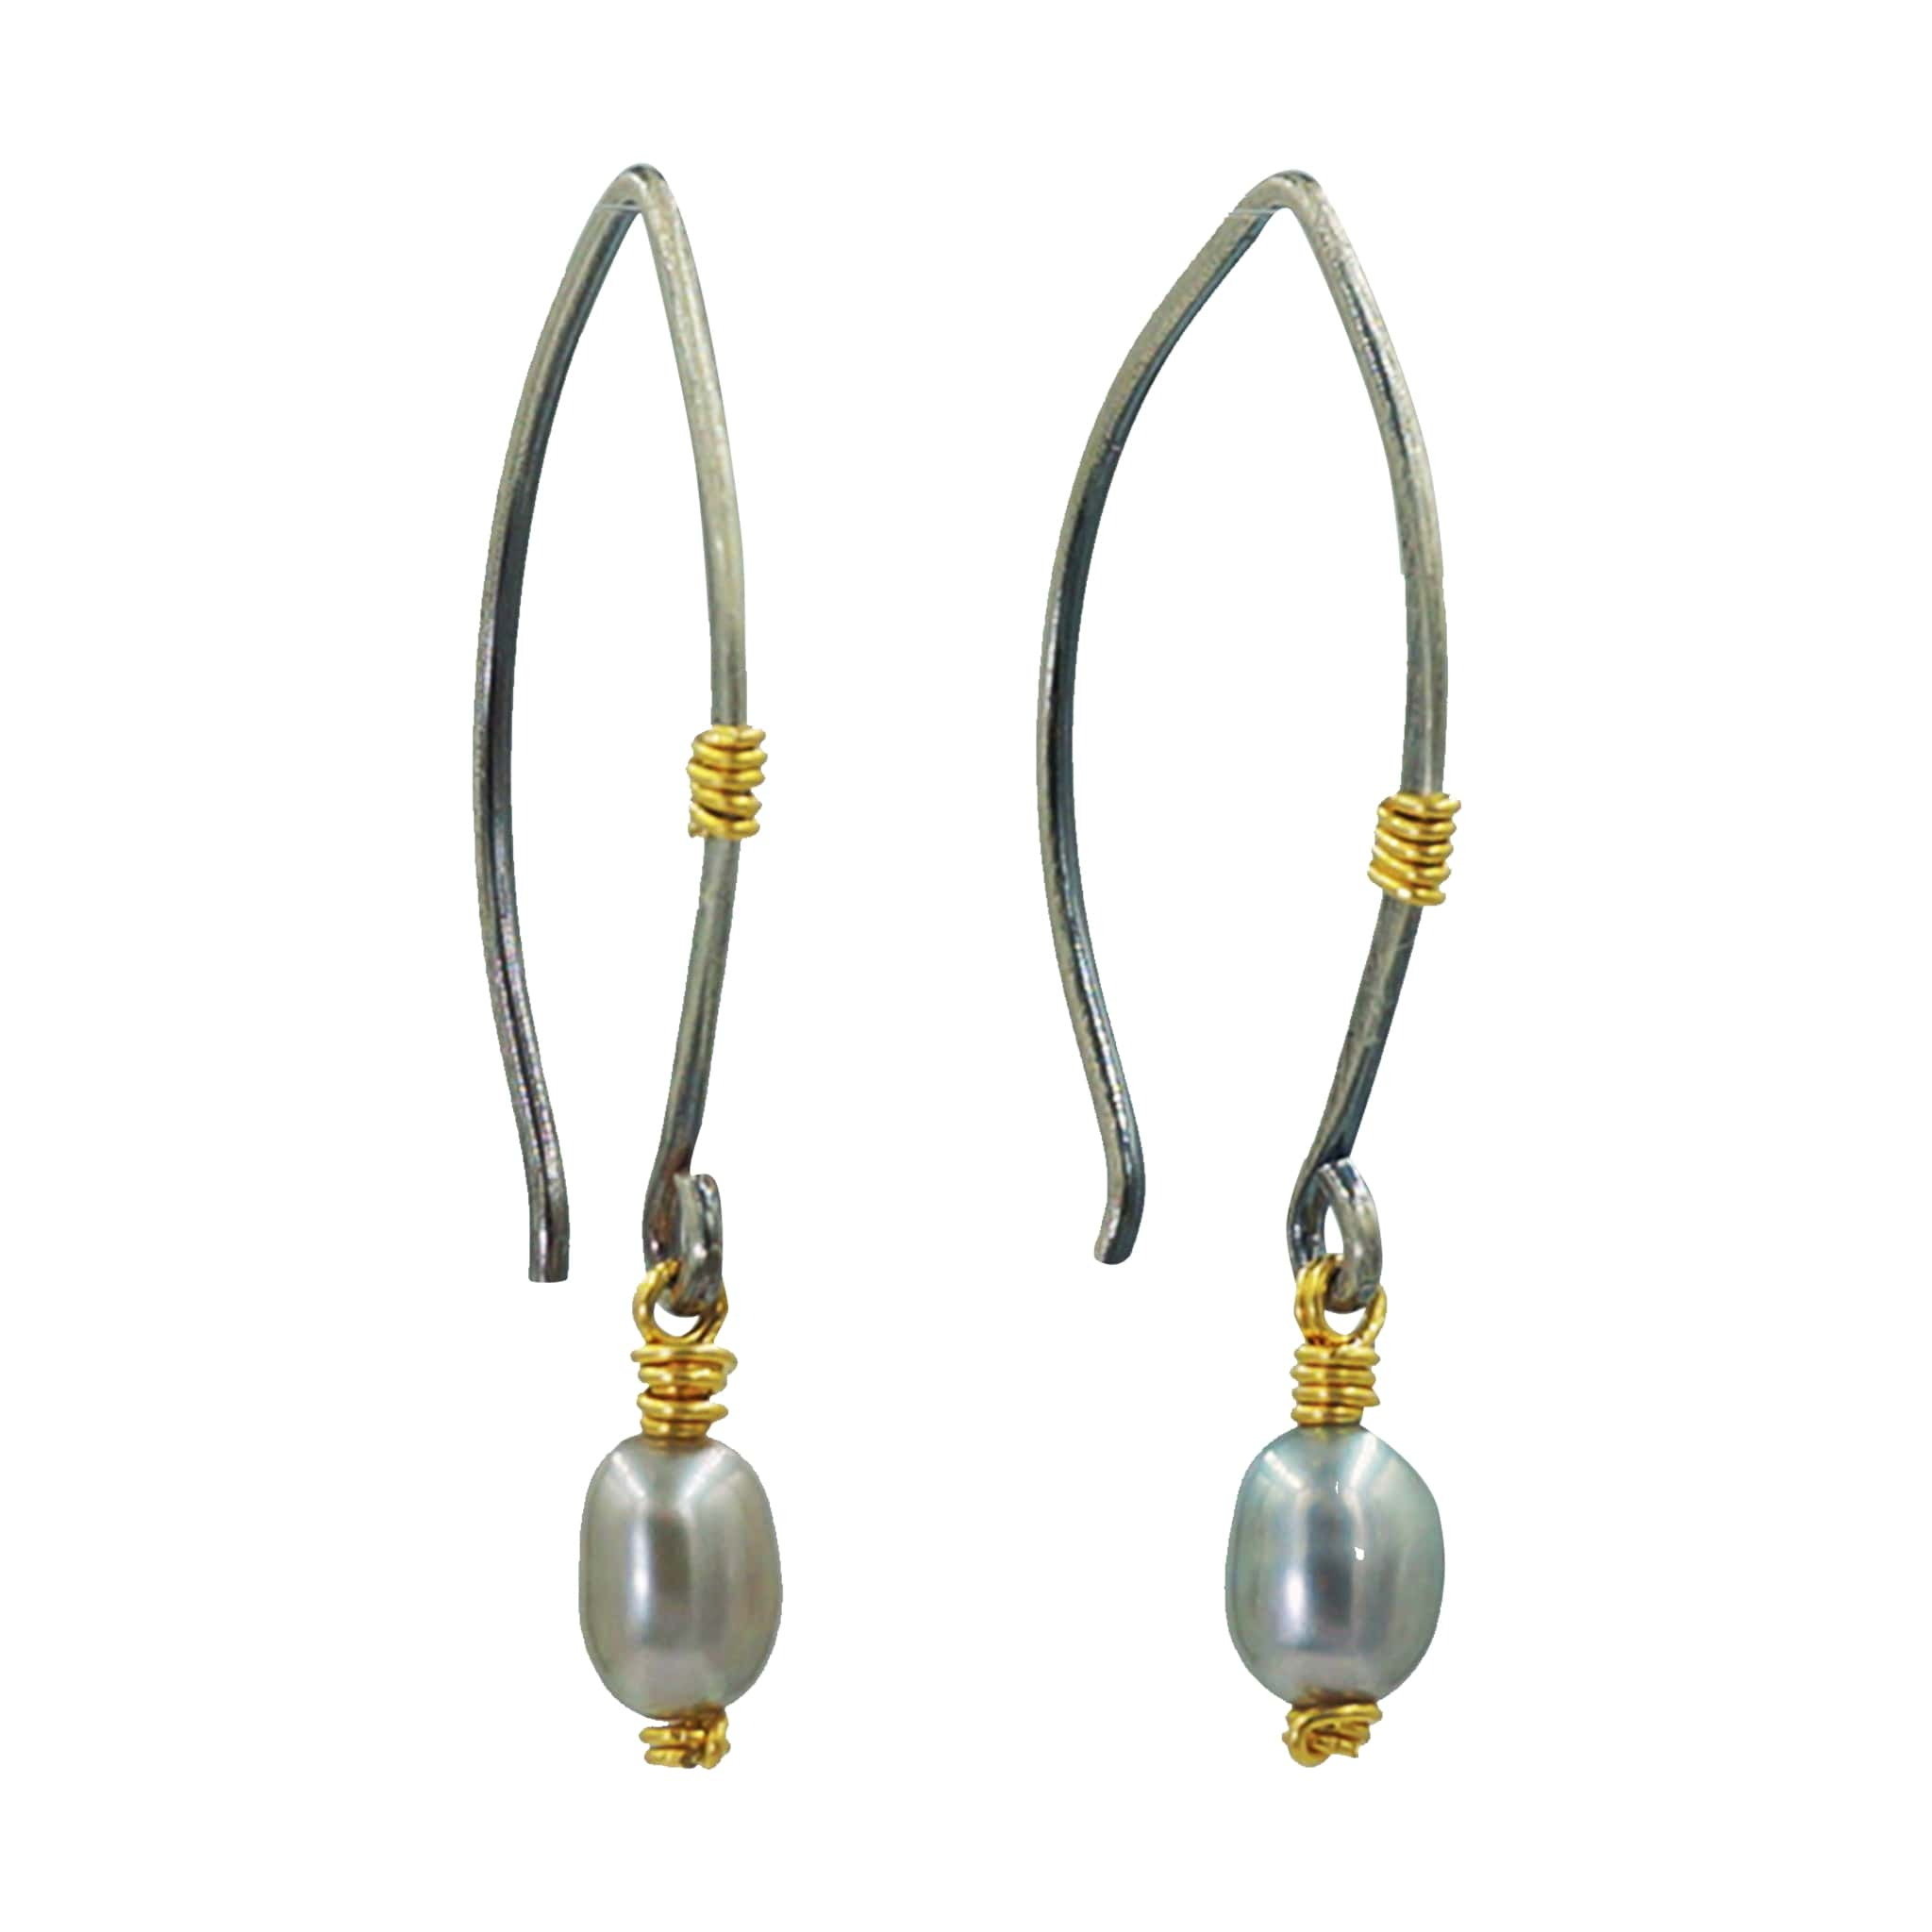 Sliver Pearl Earrings - Sati Gems Hawaii Healing Crystal Gemstone Jewelry